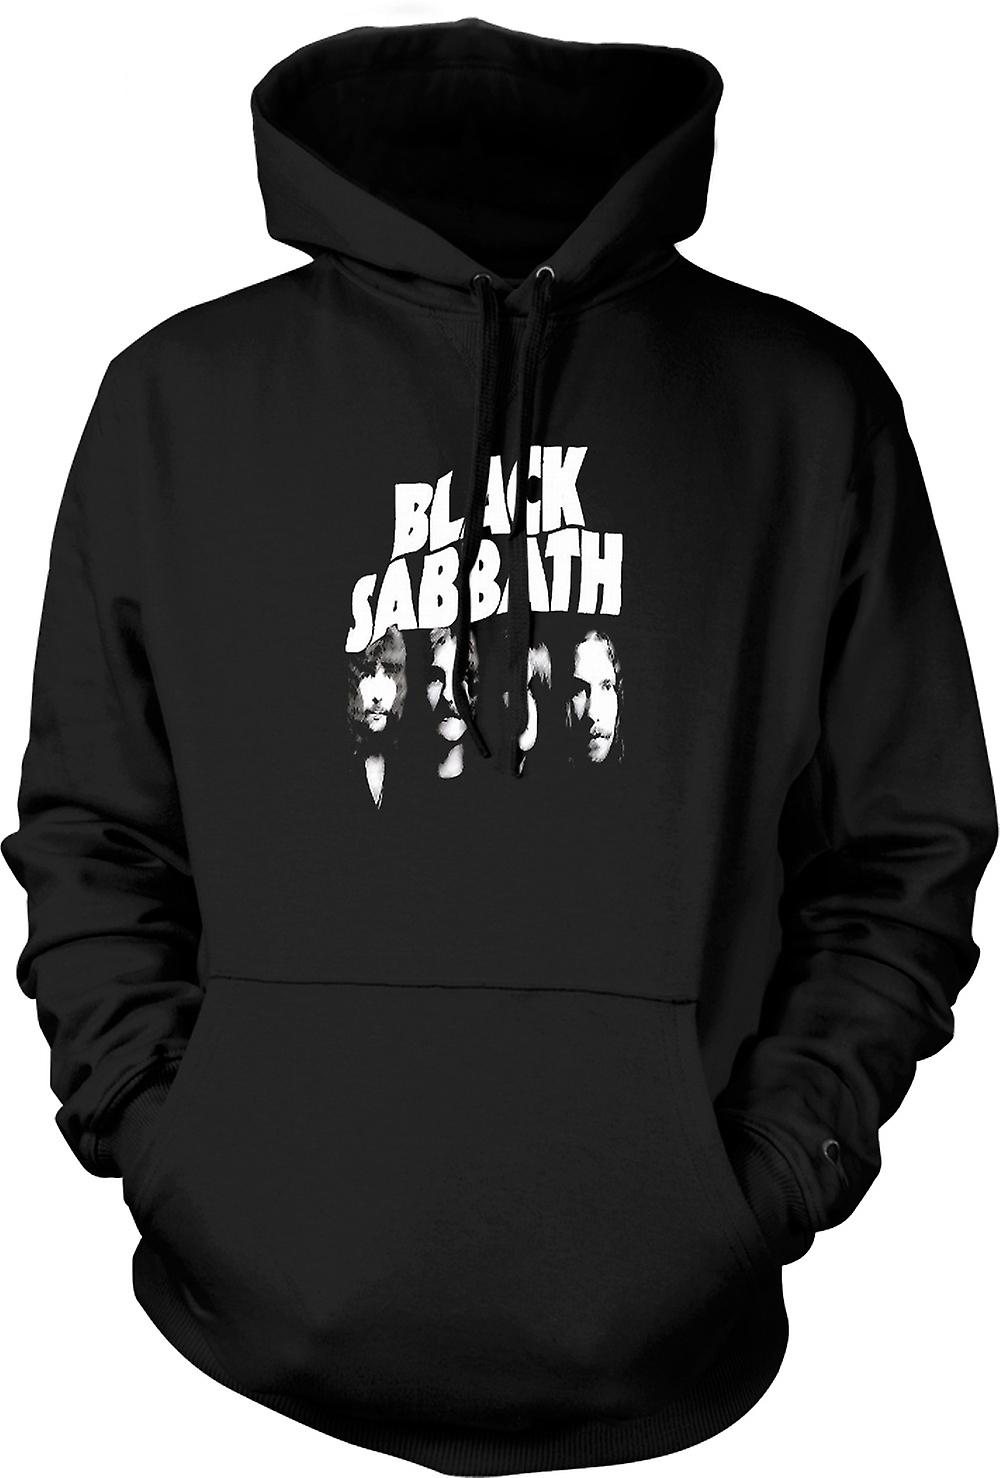 Kids Hoodie - Sabbath - Band - Heavy Metal